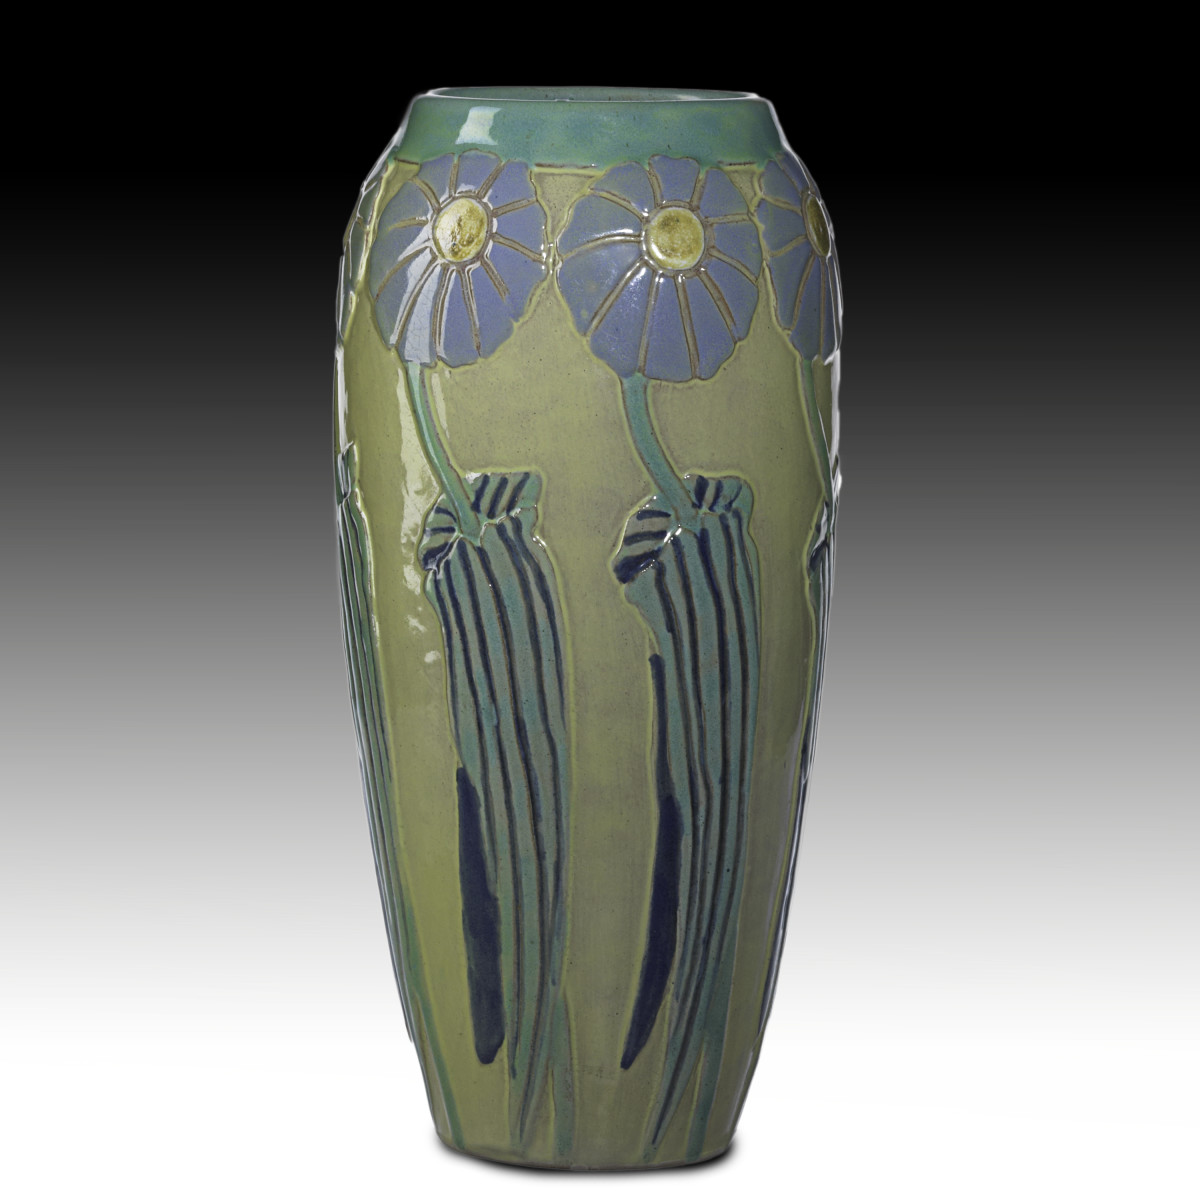 "Mary L. Yancey, Iowa State, Ames, Iowa, vase, 9-1/4"" x 5"", carved with blue daisies on yellow ground, 1920s."